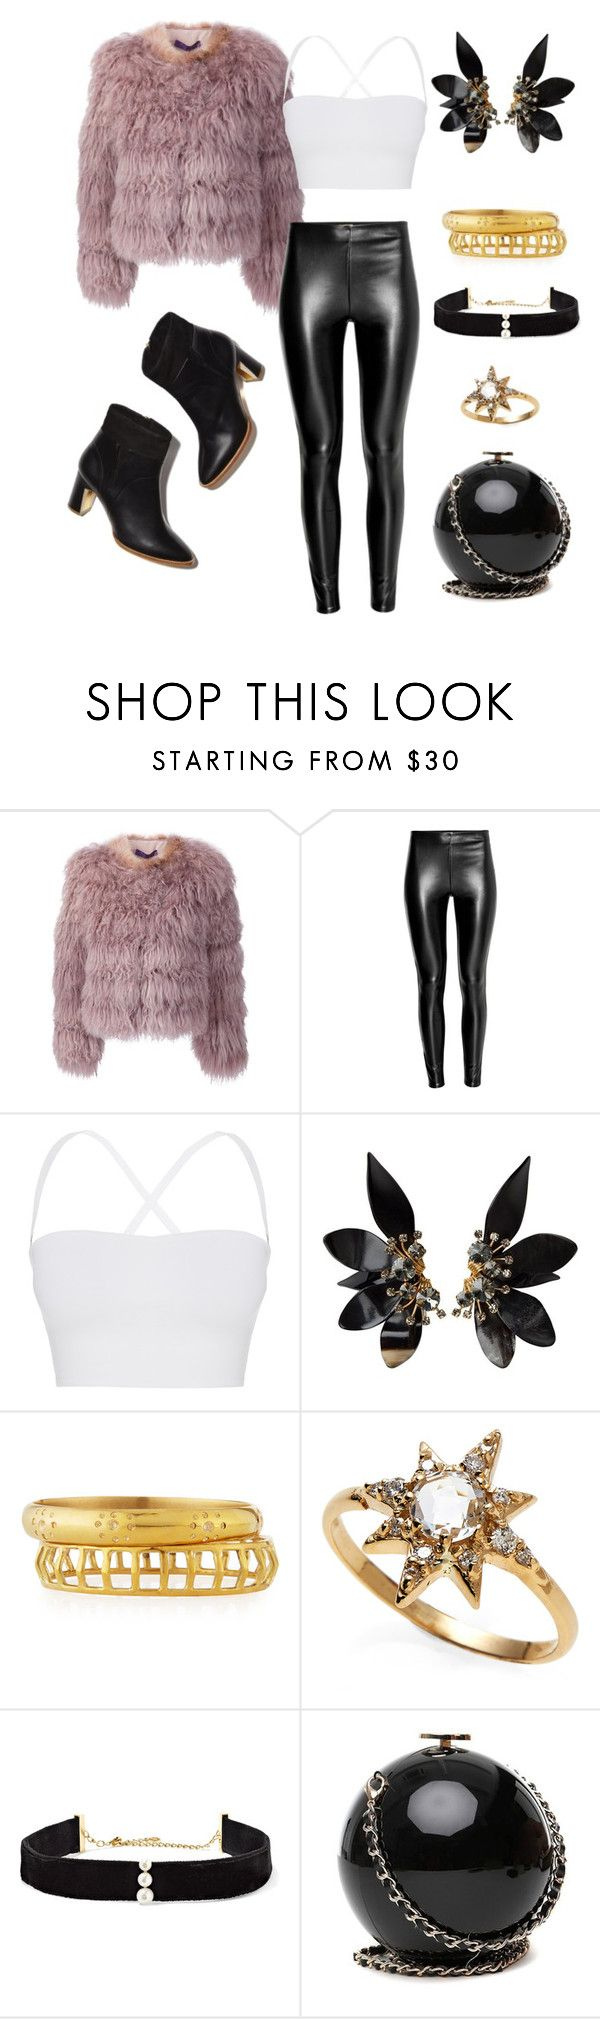 """I need a gangsta..."" by hayleylovee ❤ liked on Polyvore featuring Ralph Lauren Black Label, Theory, Marni, Ashley Pittman, Anzie, Anissa Kermiche, Rupert Sanderson, SuicideSquad and ineedagangster"